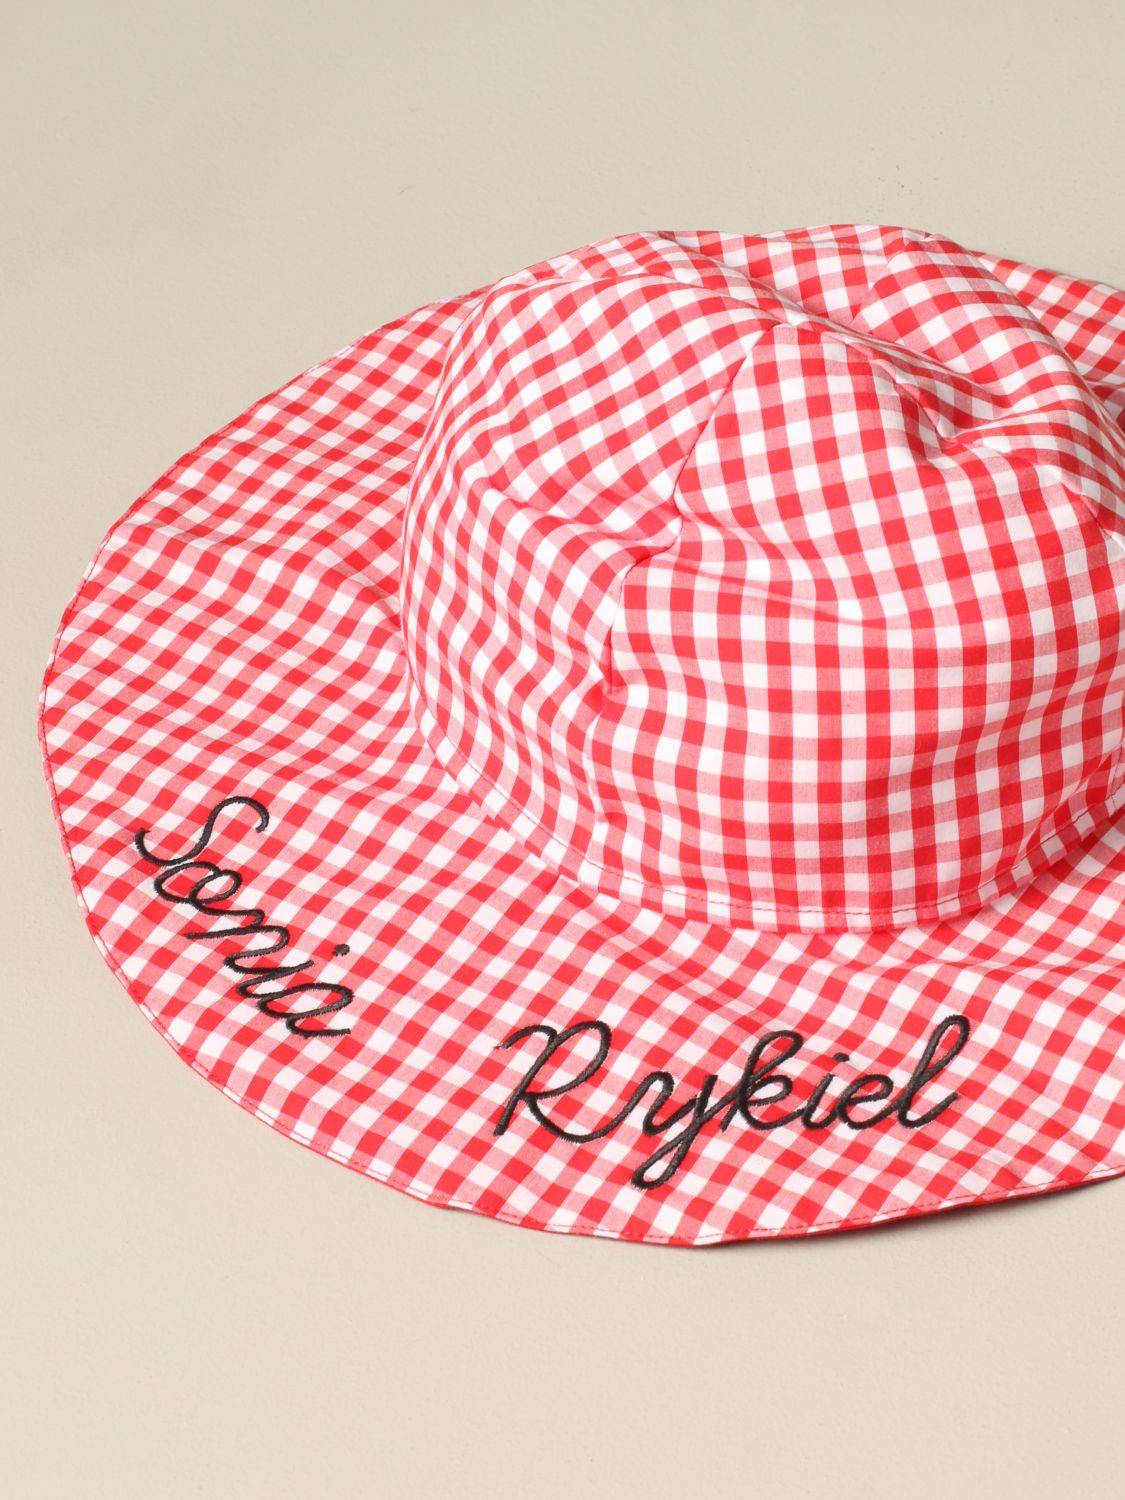 Sonia Rykiel checkered hat with logo red 4